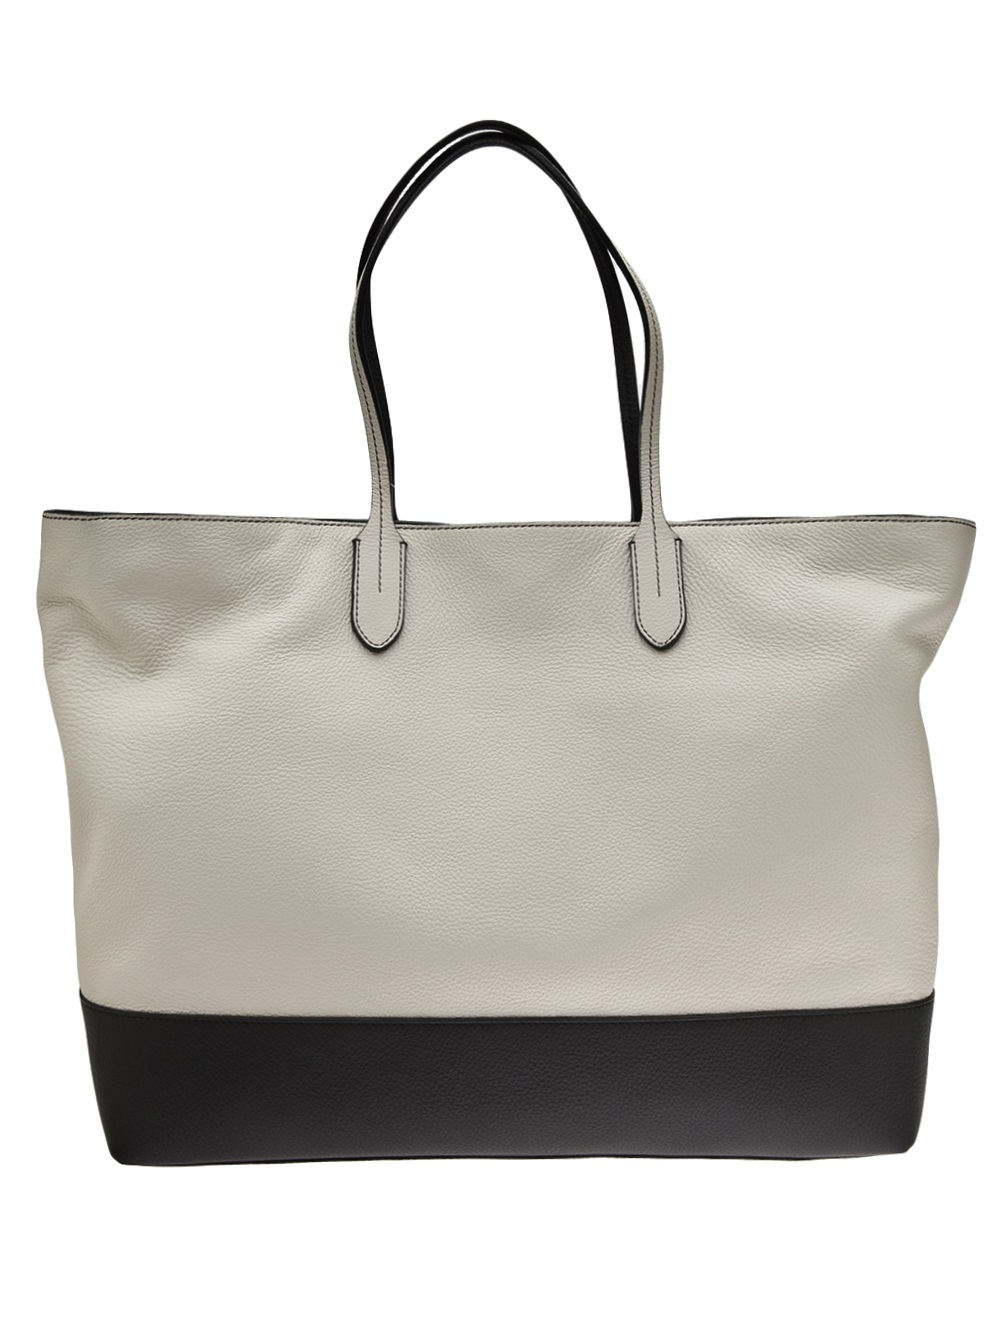 Boutique Moschino Tote Bag in White (Grey)